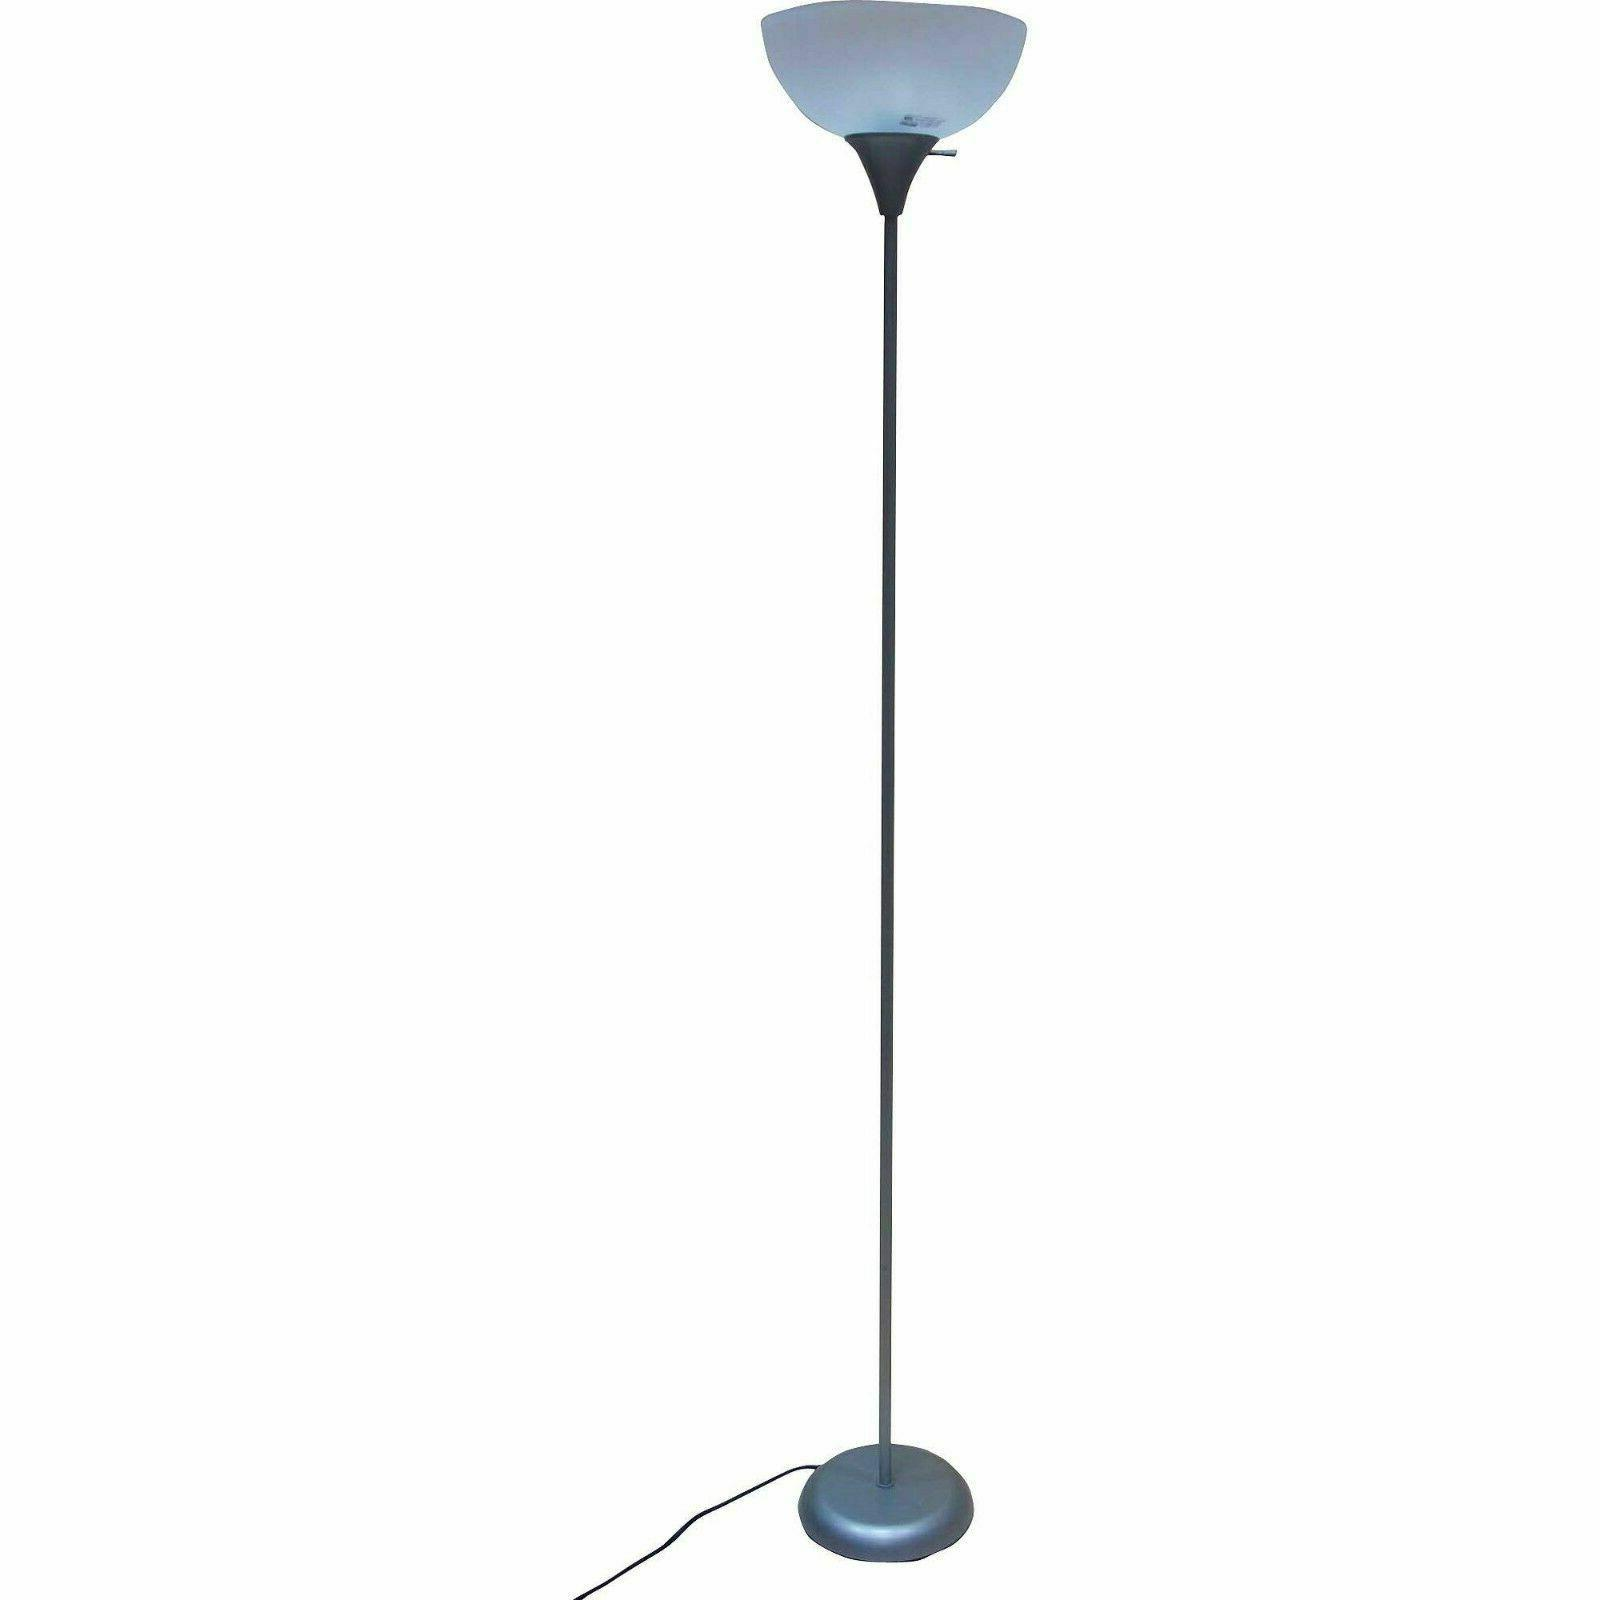 Metal Floor Living Torchiere Decor Shade Reading